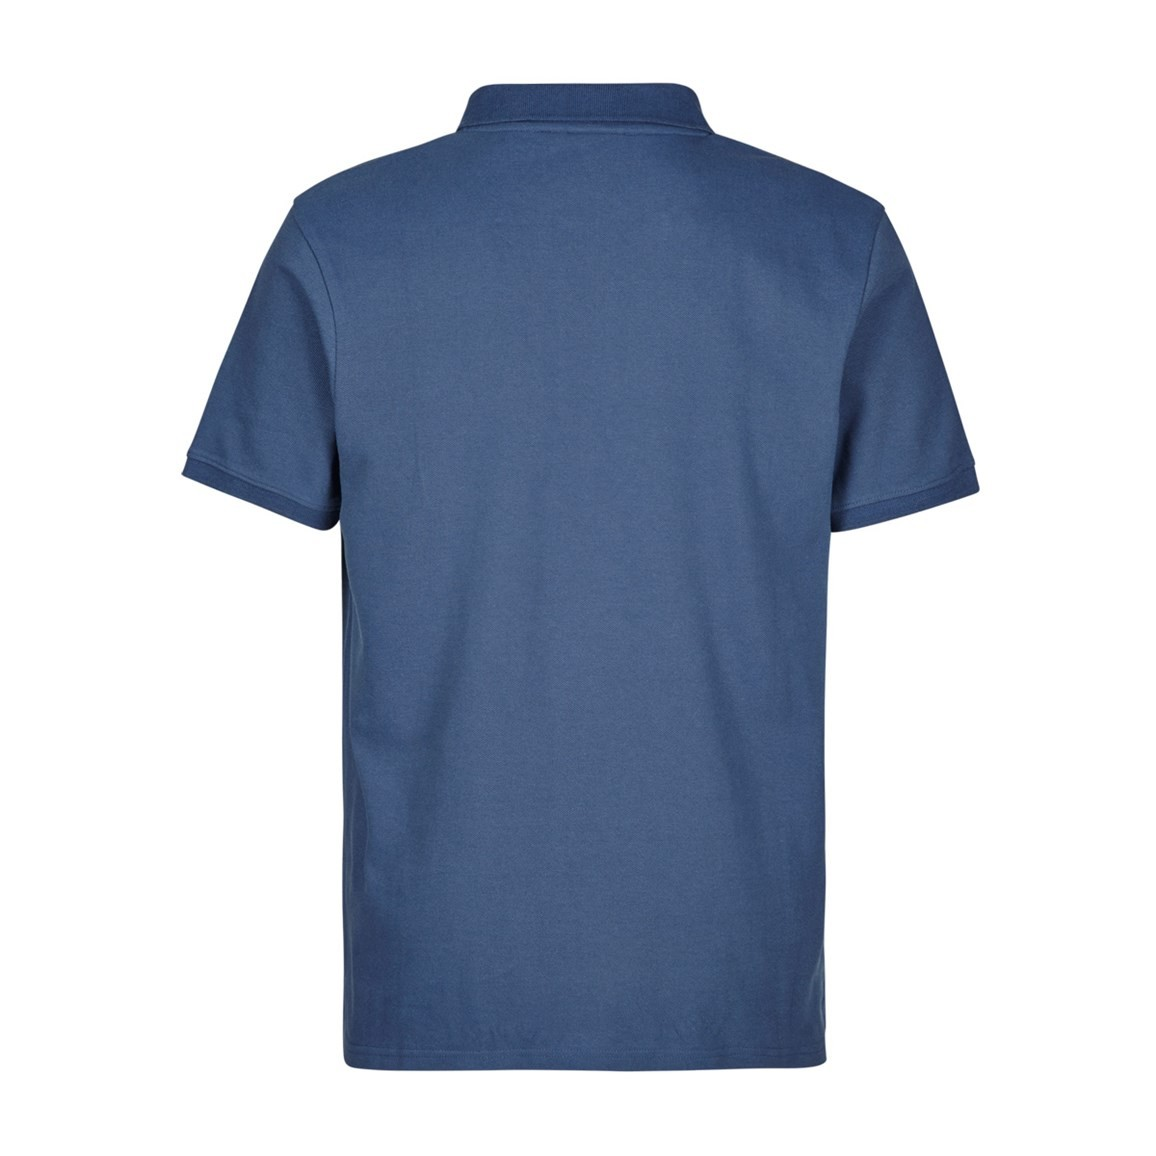 Saltash Rib Collar Pique Polo Shirt Ensign Blue